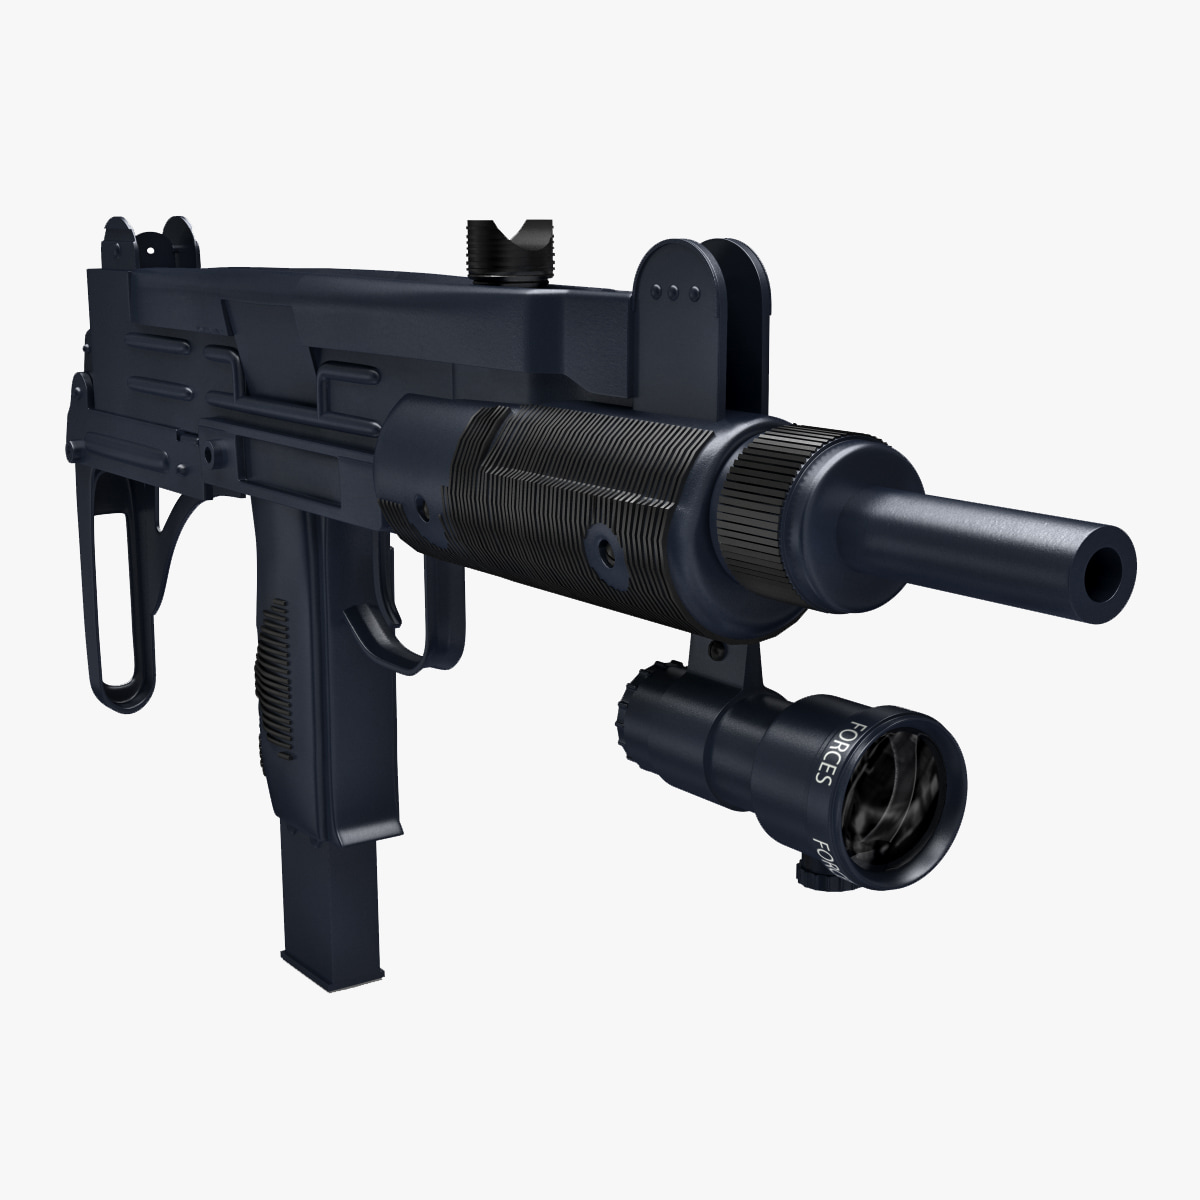 Mini_Uzi_Sub_Machine_Gun_V2_000.jpg